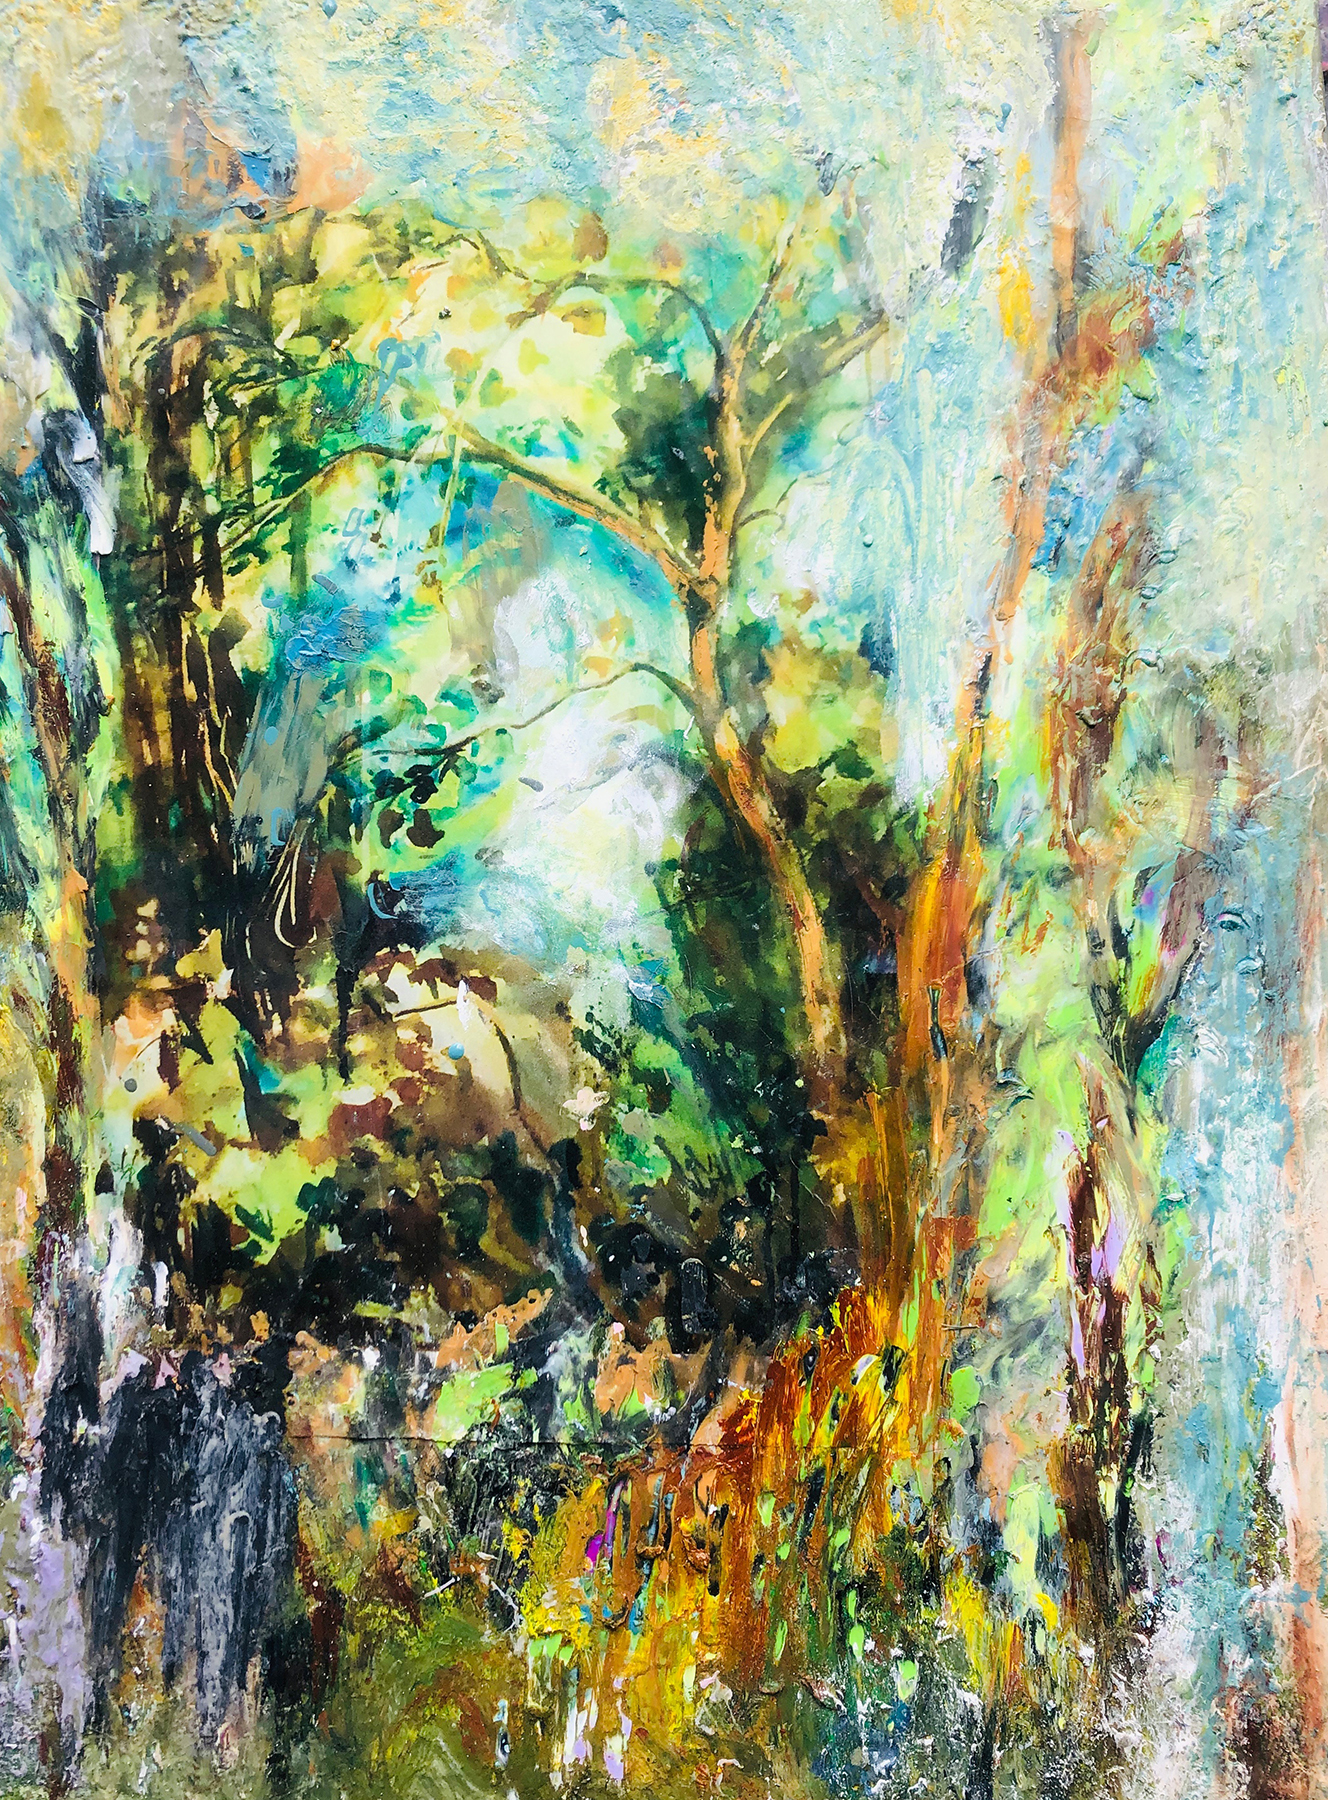 """</br><p align=""""left""""><strong><em>Lake Hope</em></strong></br>26 x 21""""</br>Mixed media</br>$325</br><strong><a href=""""https://checkout.square.site/buy/JCSHA5Q4EKBZIBAA5IIBKYDD"""">PURCHASE</a></strong></p><br>"""